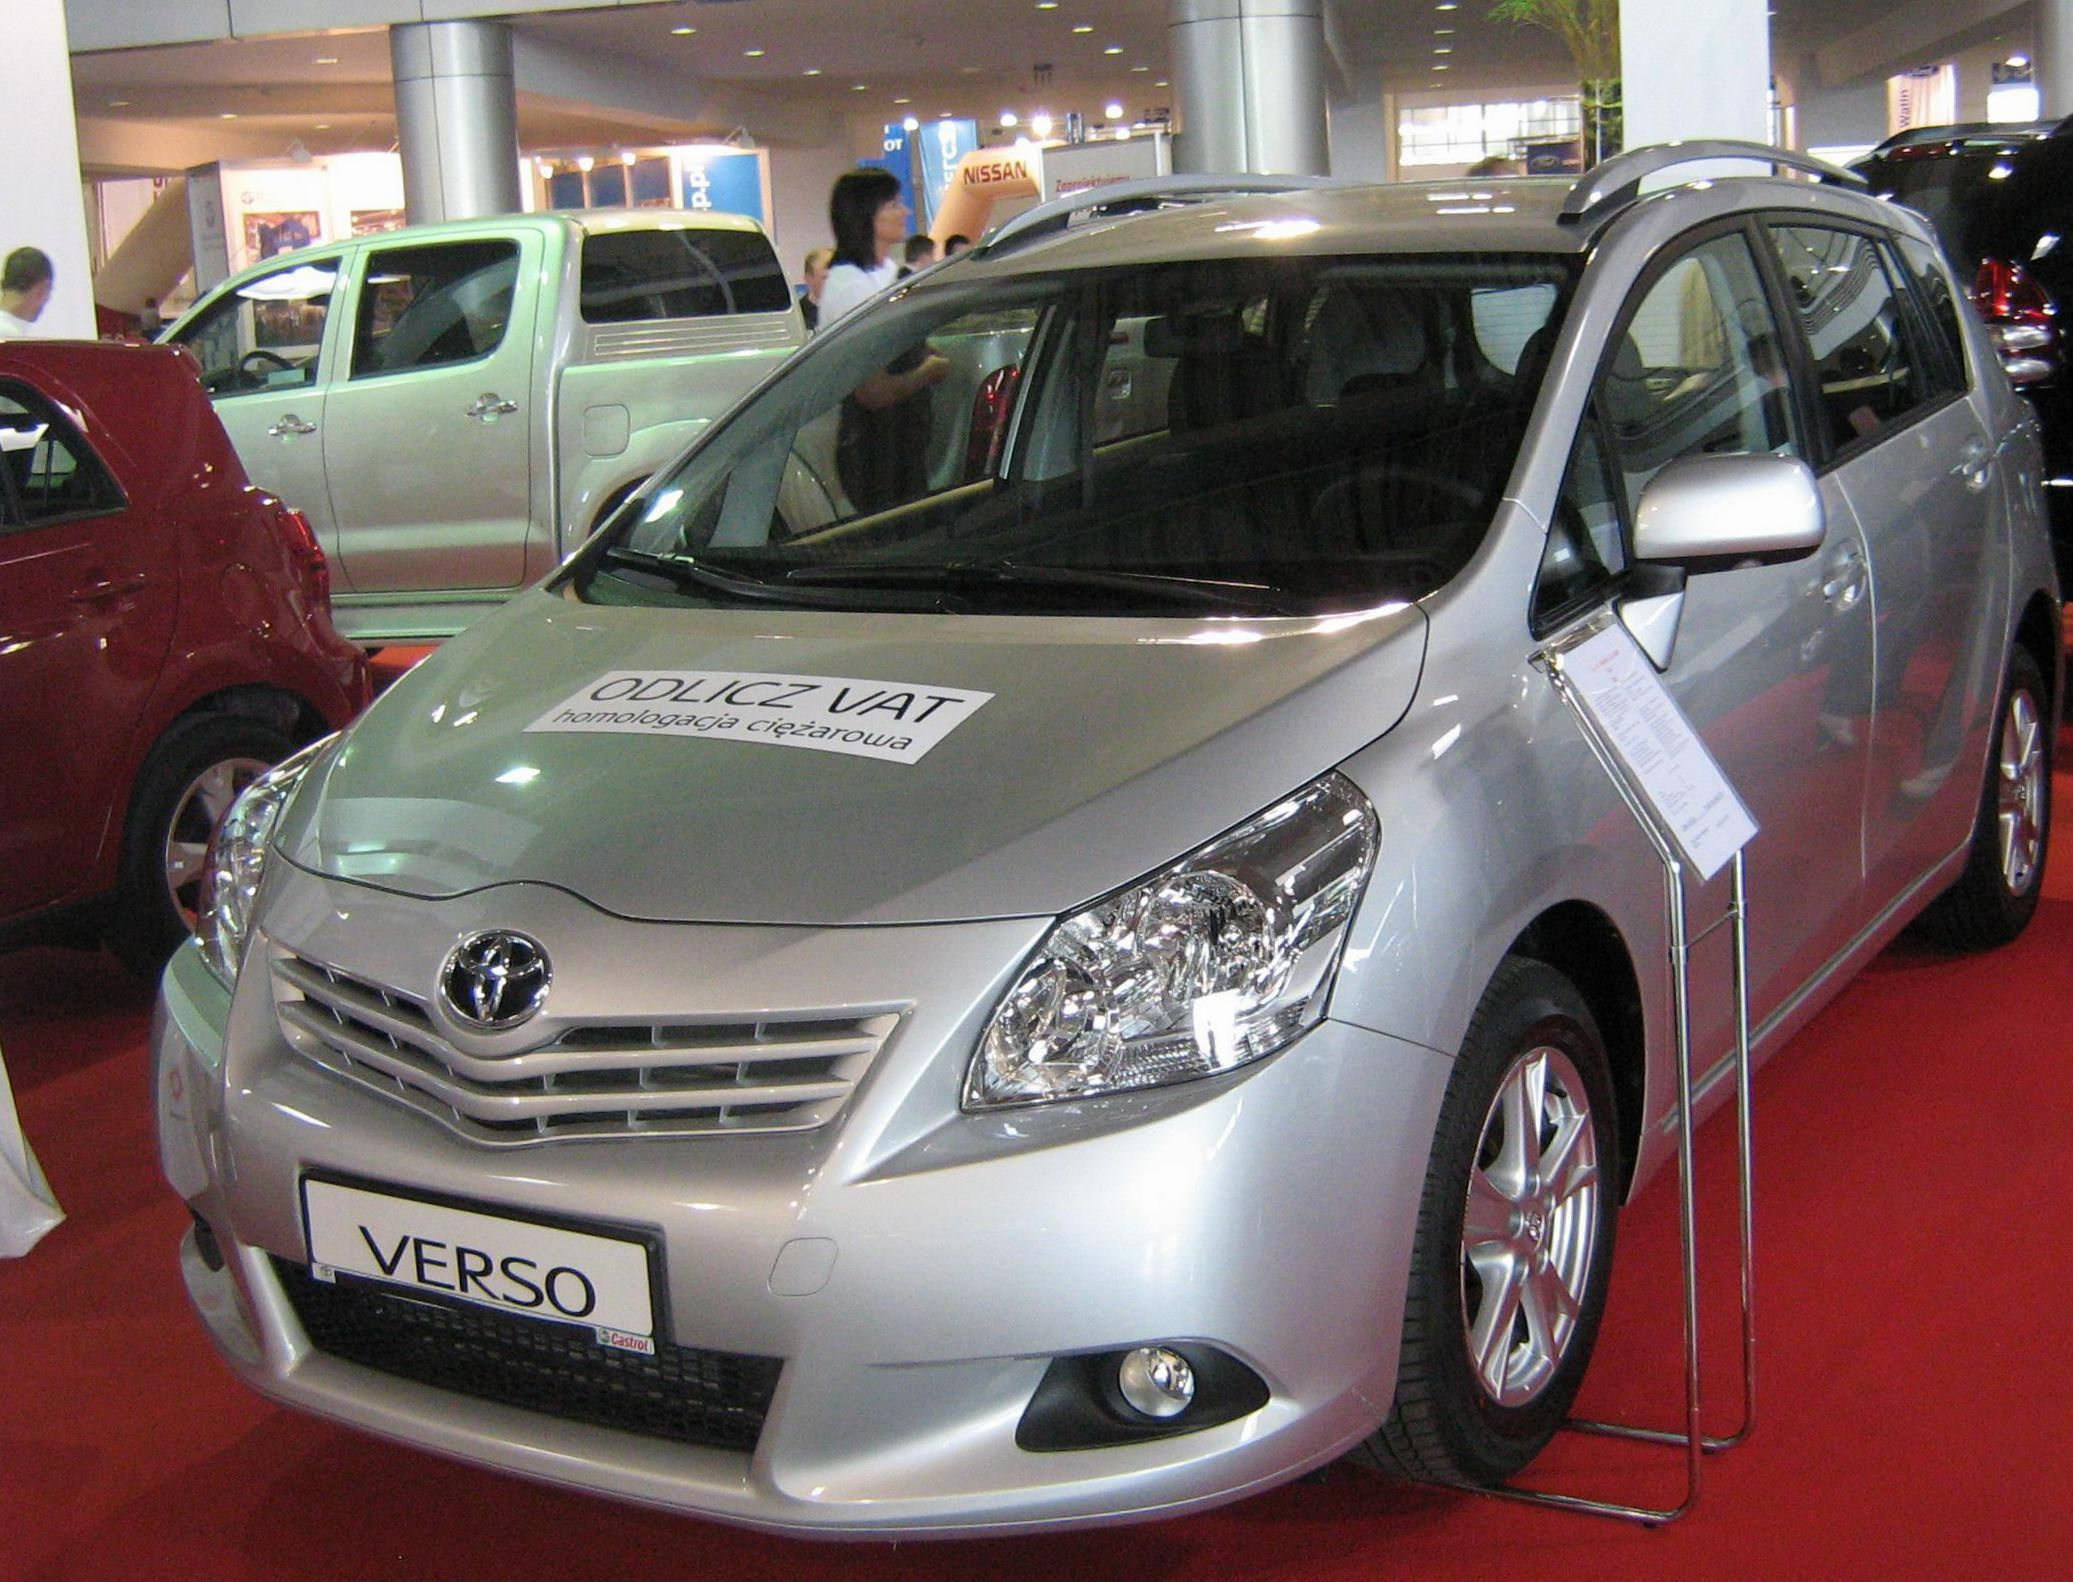 Best 10 toyota lease ideas on pinterest land cruiser car best 4x4 cars and buy toyota